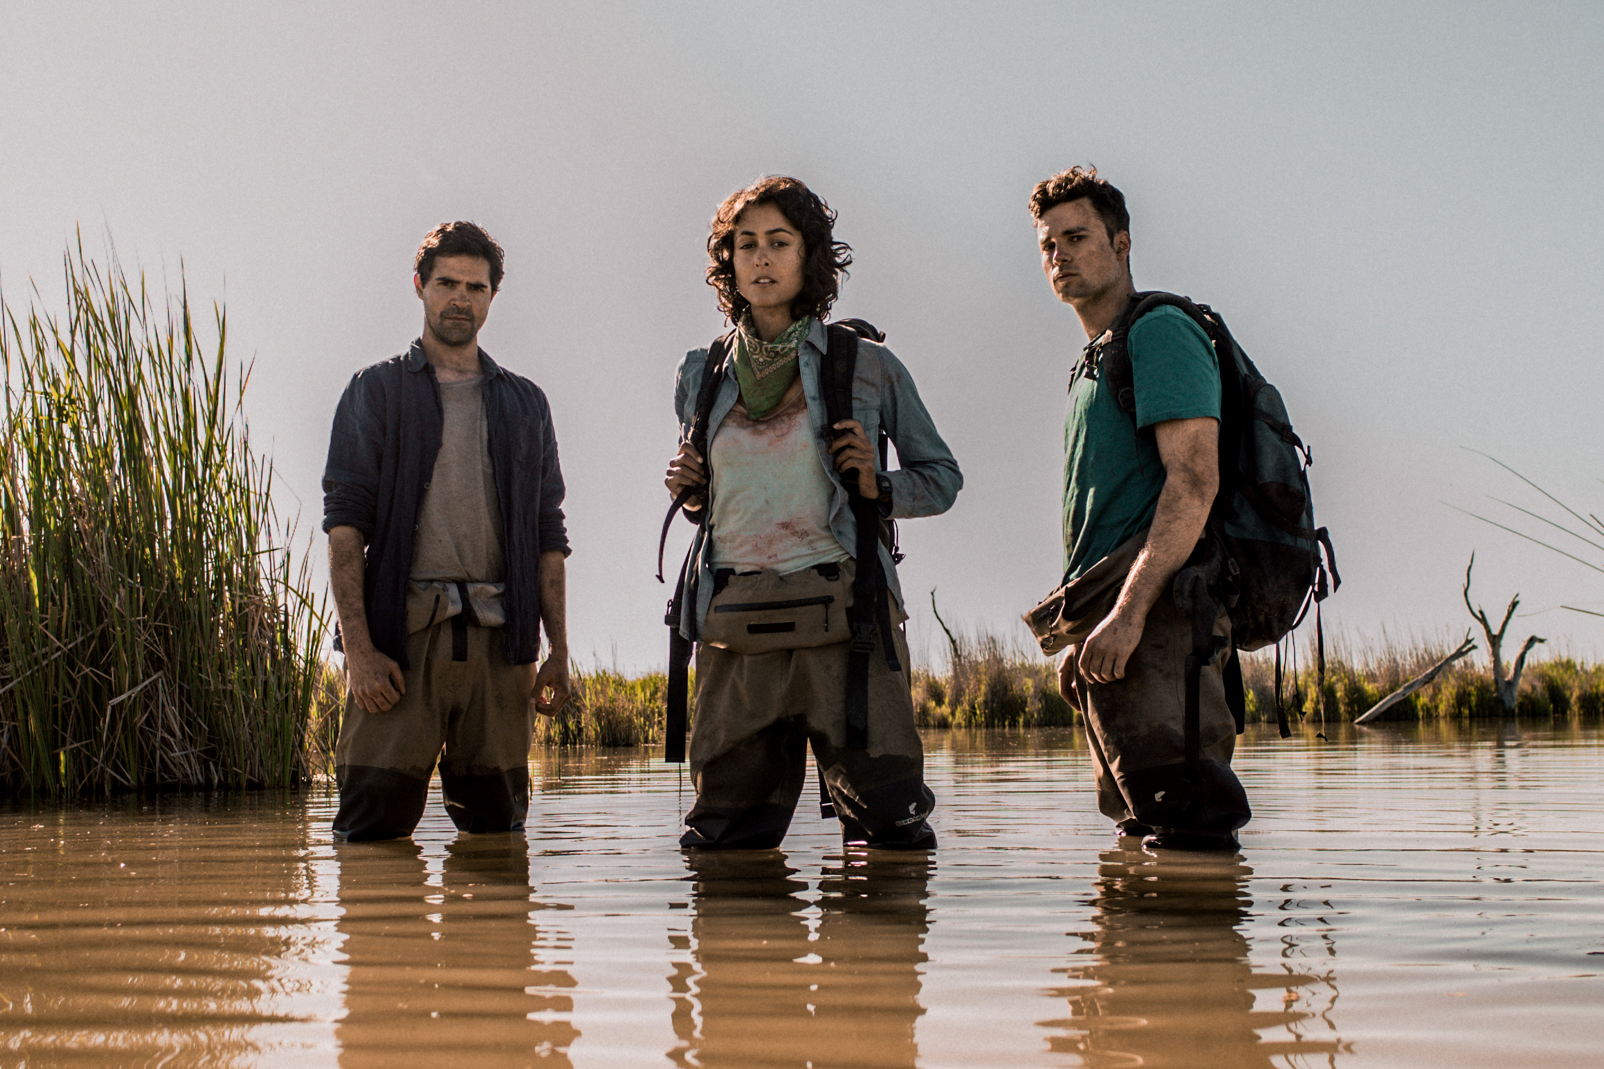 A Night of Horror Film Festival: Terror Stalks Australian Wetlands in Supernatural Slasher Film The Marshes (2017)